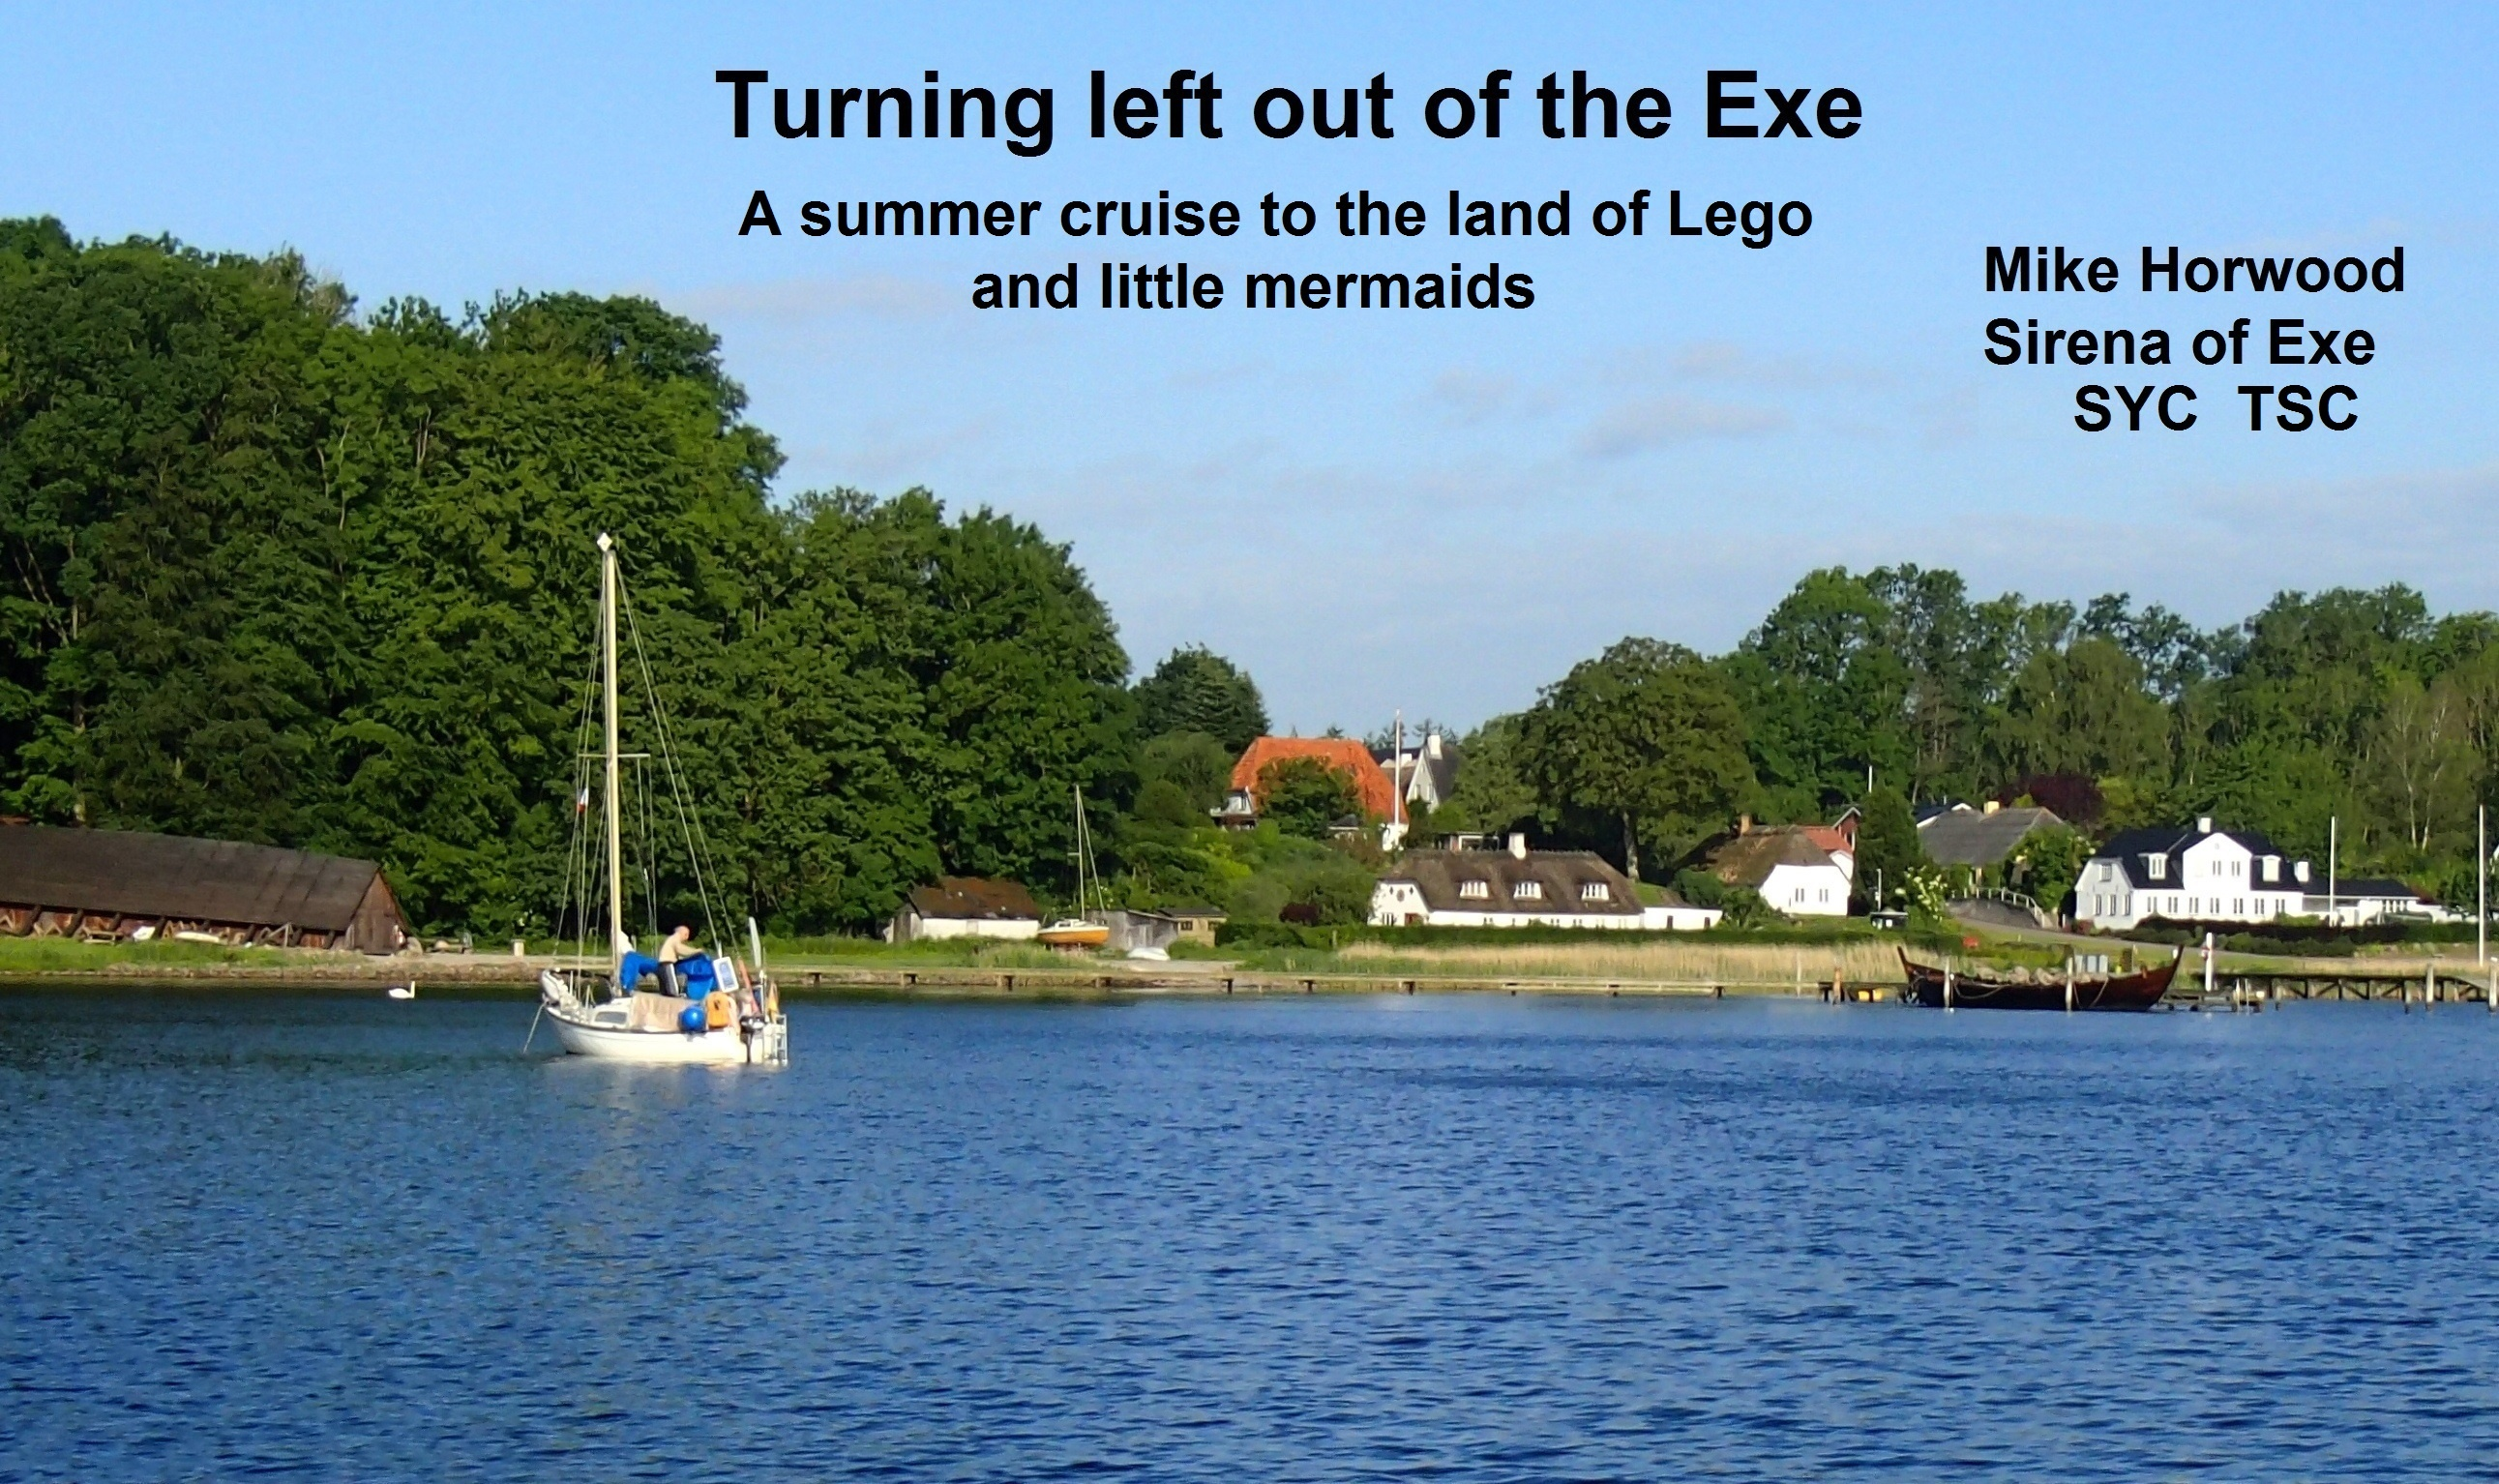 Out of the Exe and turn left - the land of Lego by boat